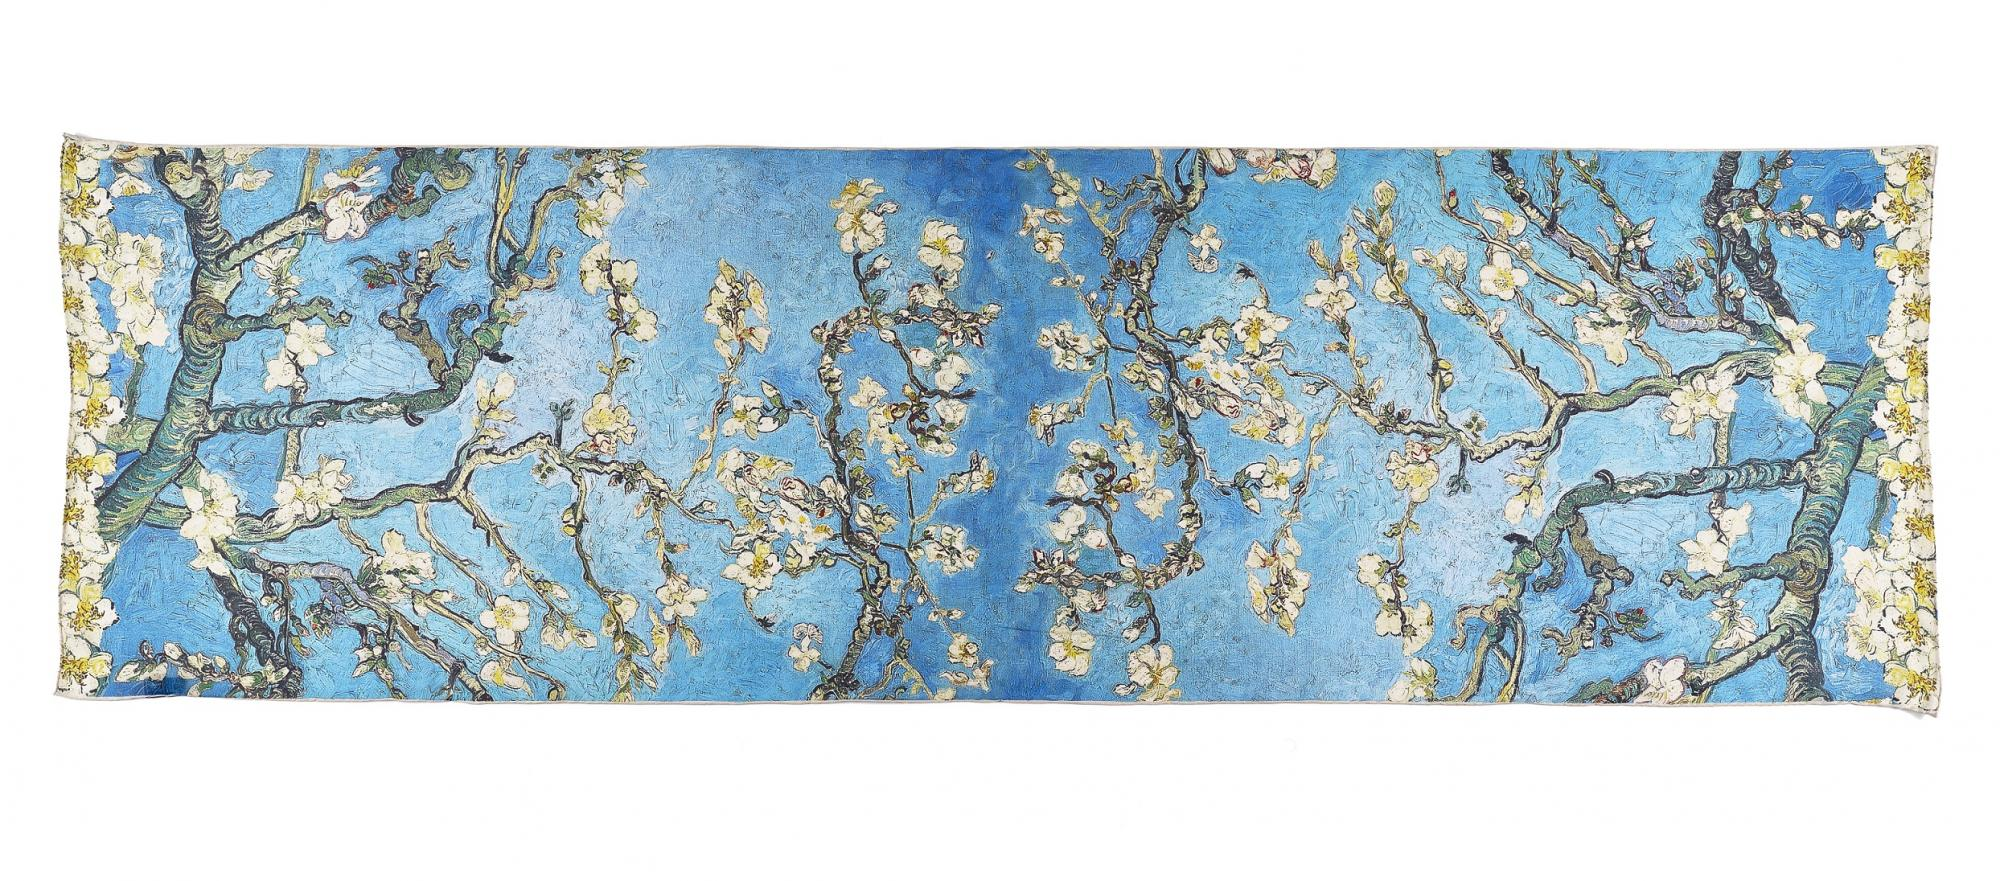 Almond Blossom by Vincent van Gogh stole